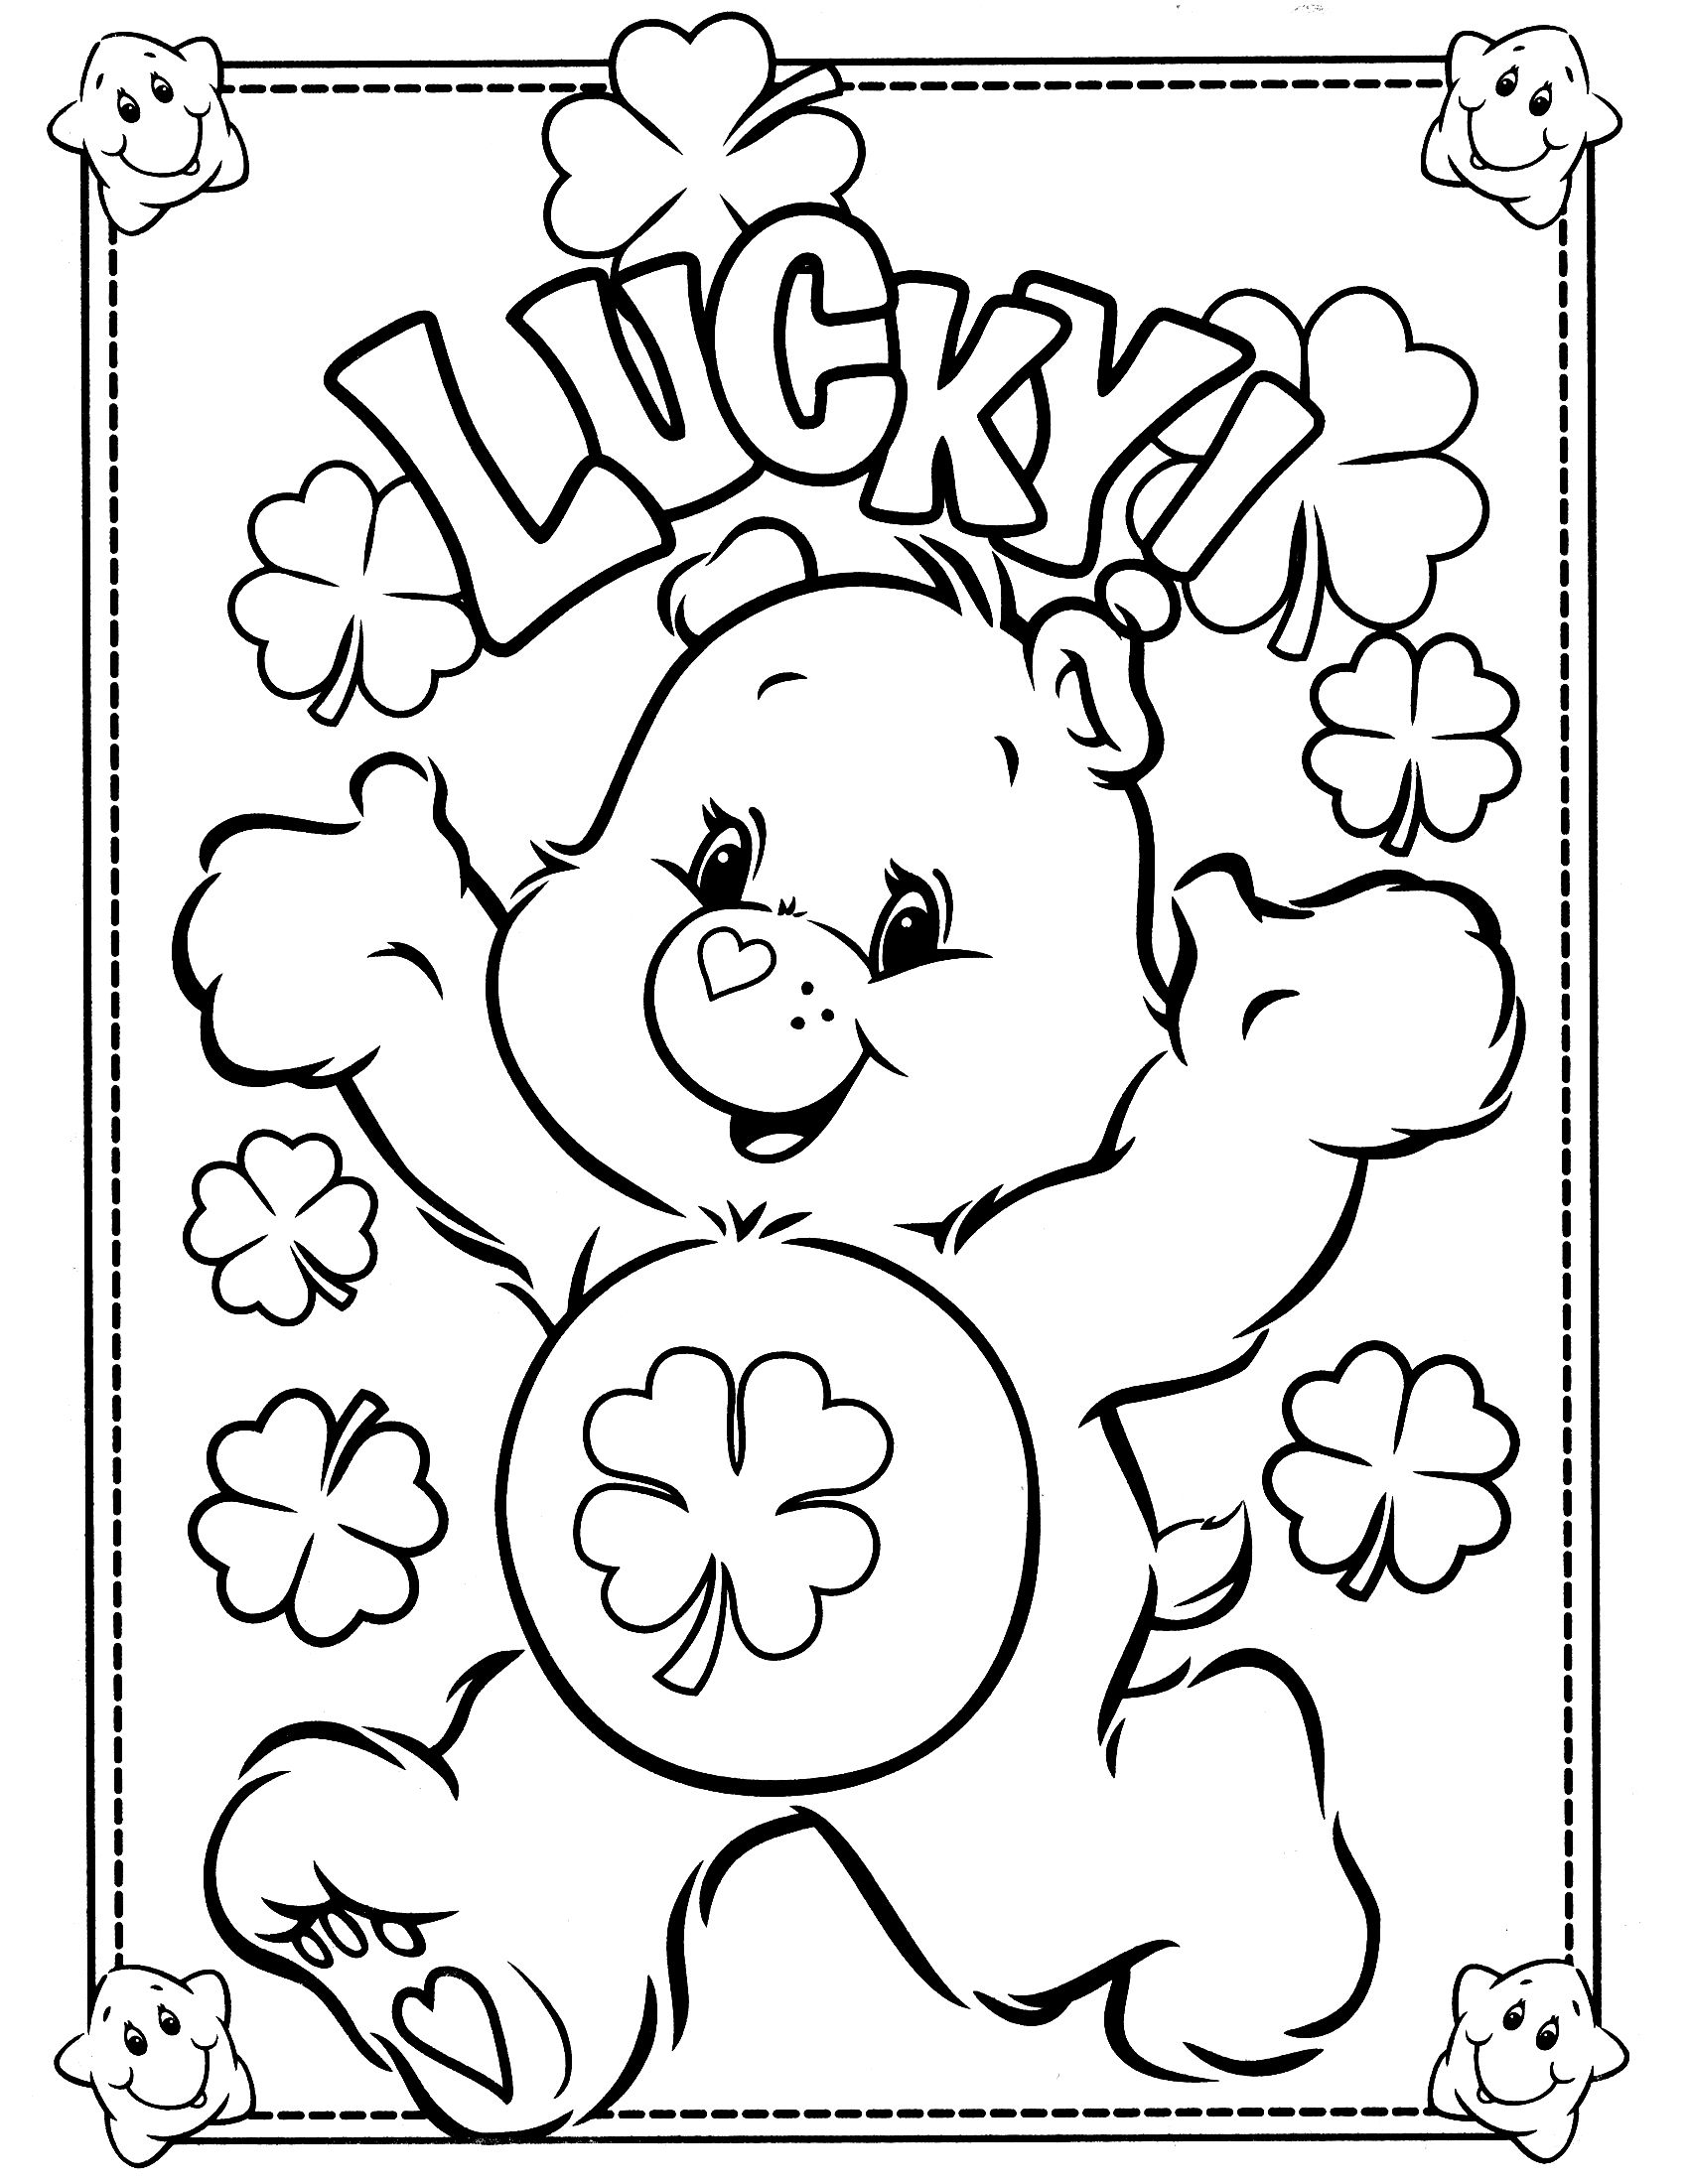 Care Bears Coloring Pages Teddy Bear Coloring Pages Bear Coloring Pages Coloring Books